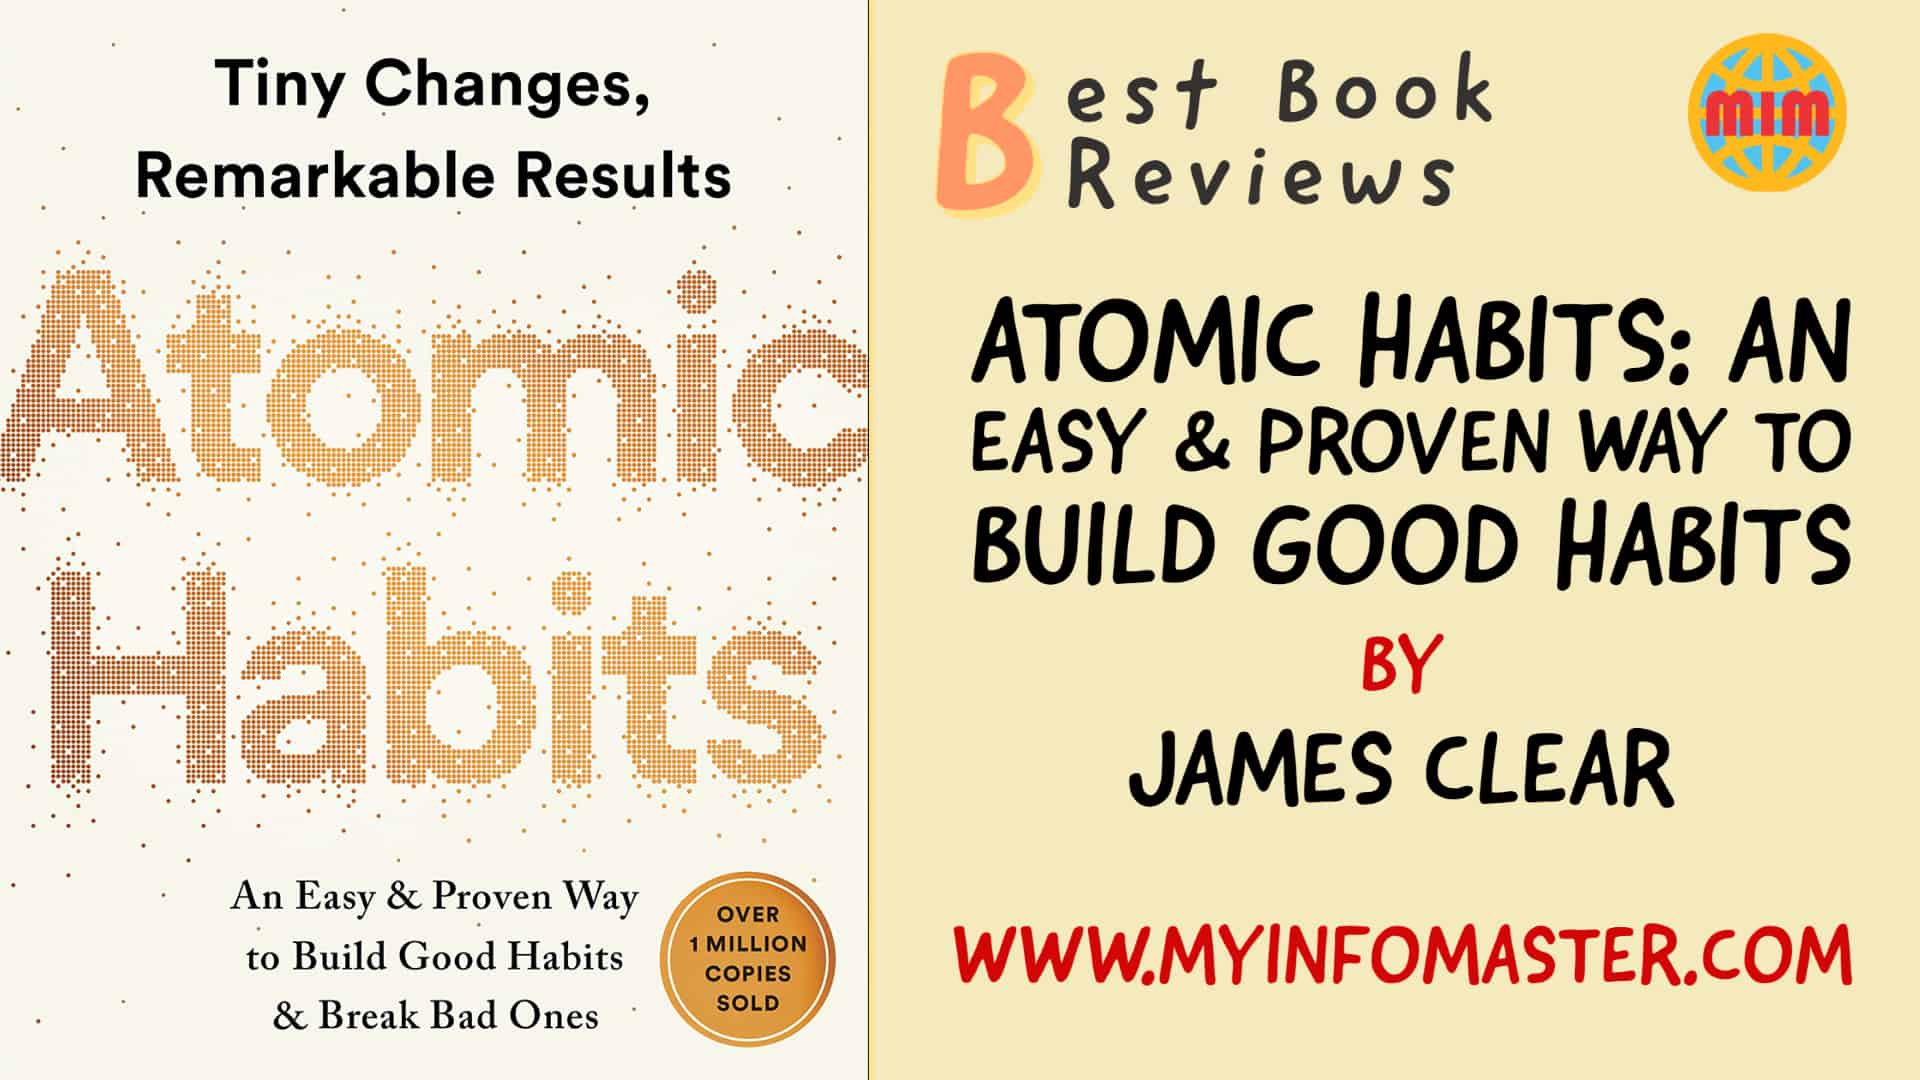 Atomic Habits, Atomic Habits An Easy & Proven, atomic habits book, best books, health and fitness books, health improvement, James Clear, James clear atomic habits, Way to Build Good Habits by James Clear